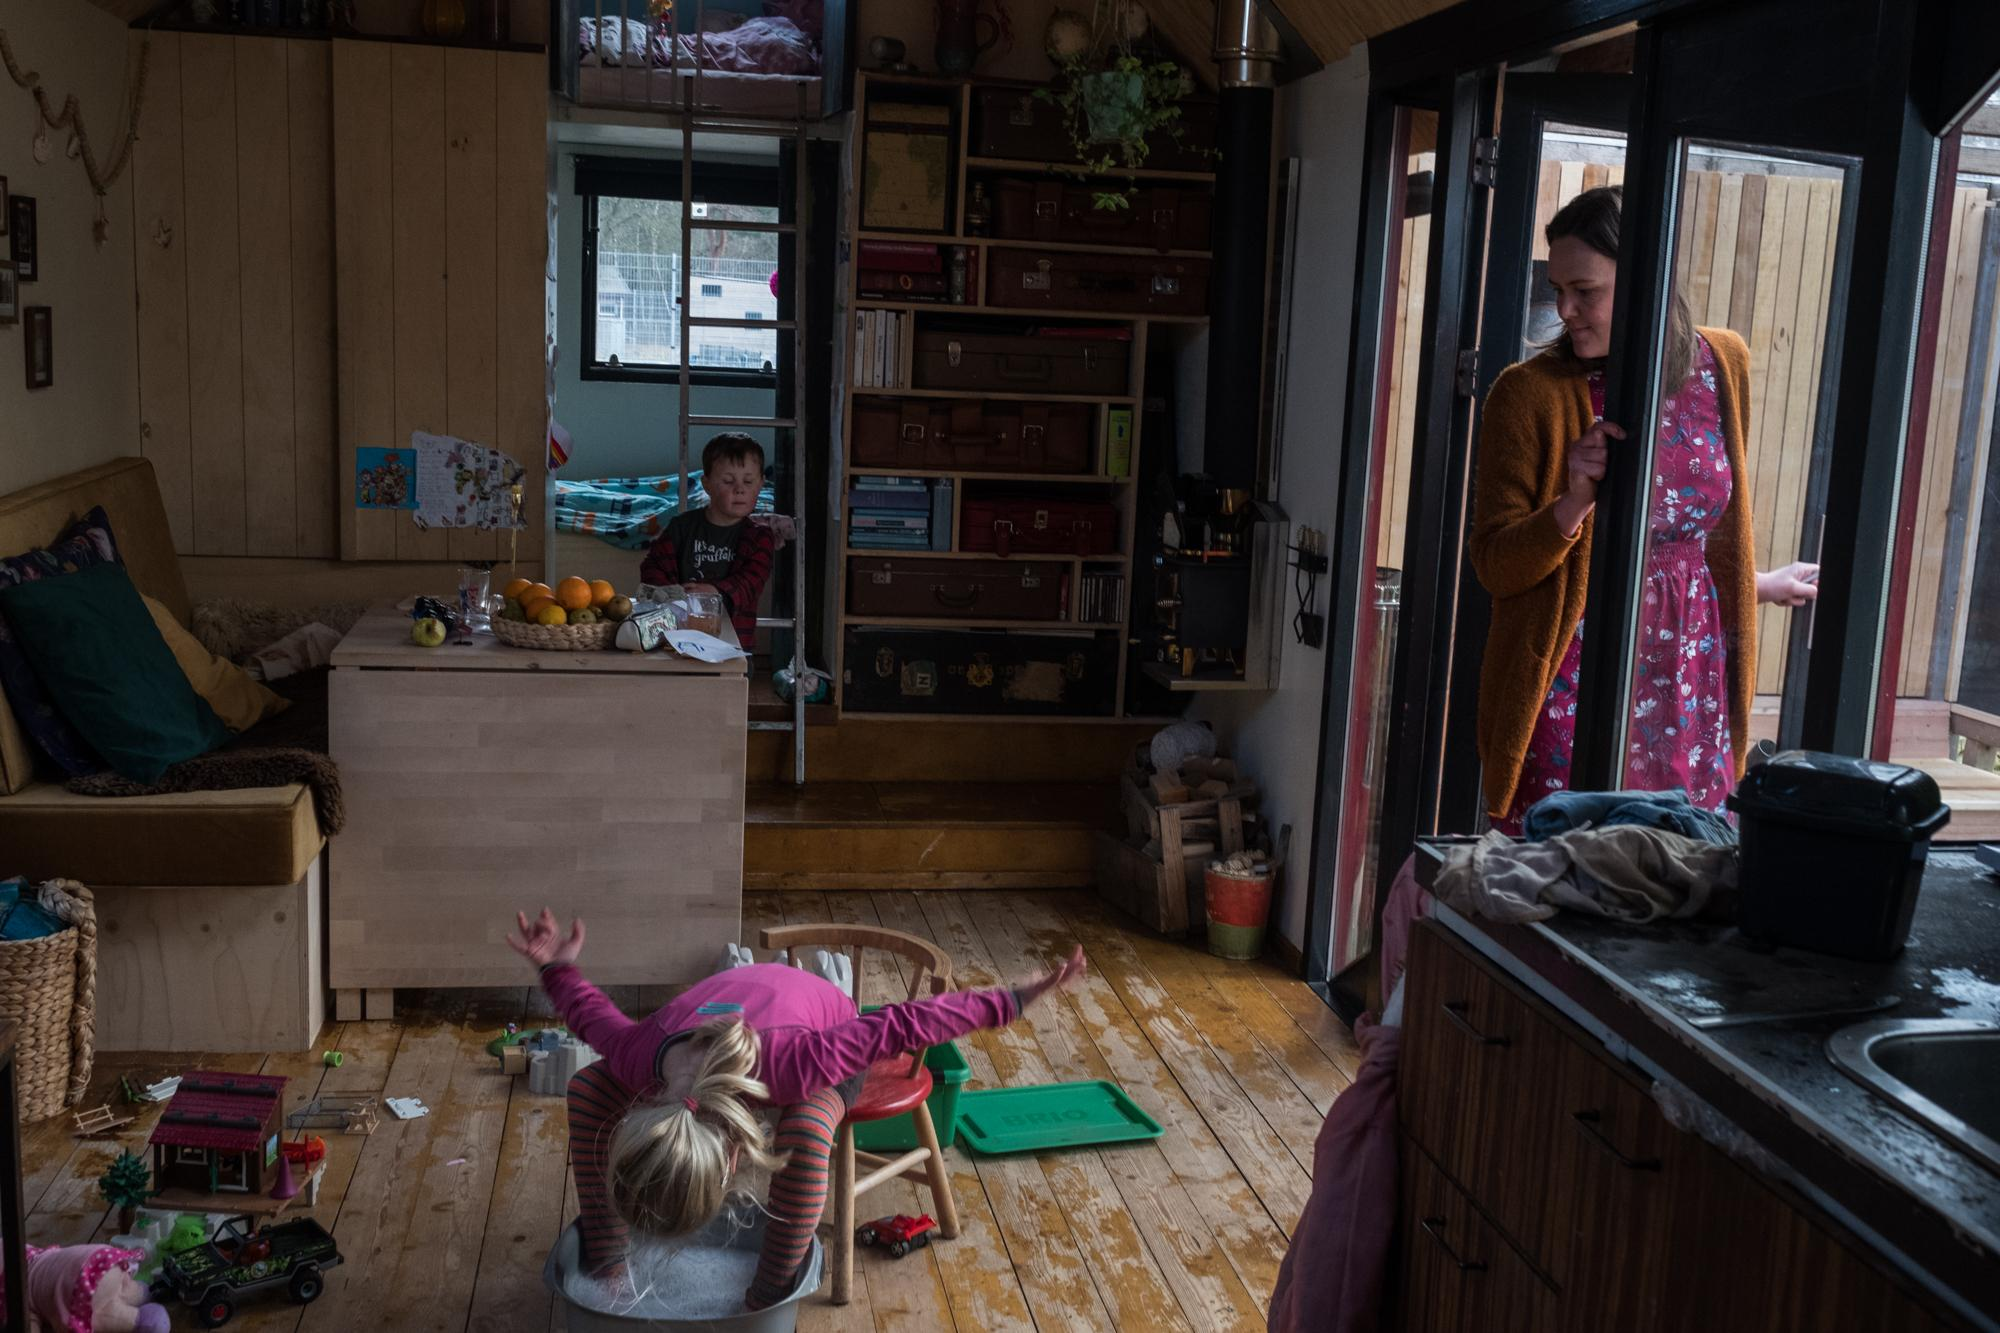 Karin Prins lives in a tiny house of 24 squared meters with her husband Gijsbert and children Berend and Juliëtte.